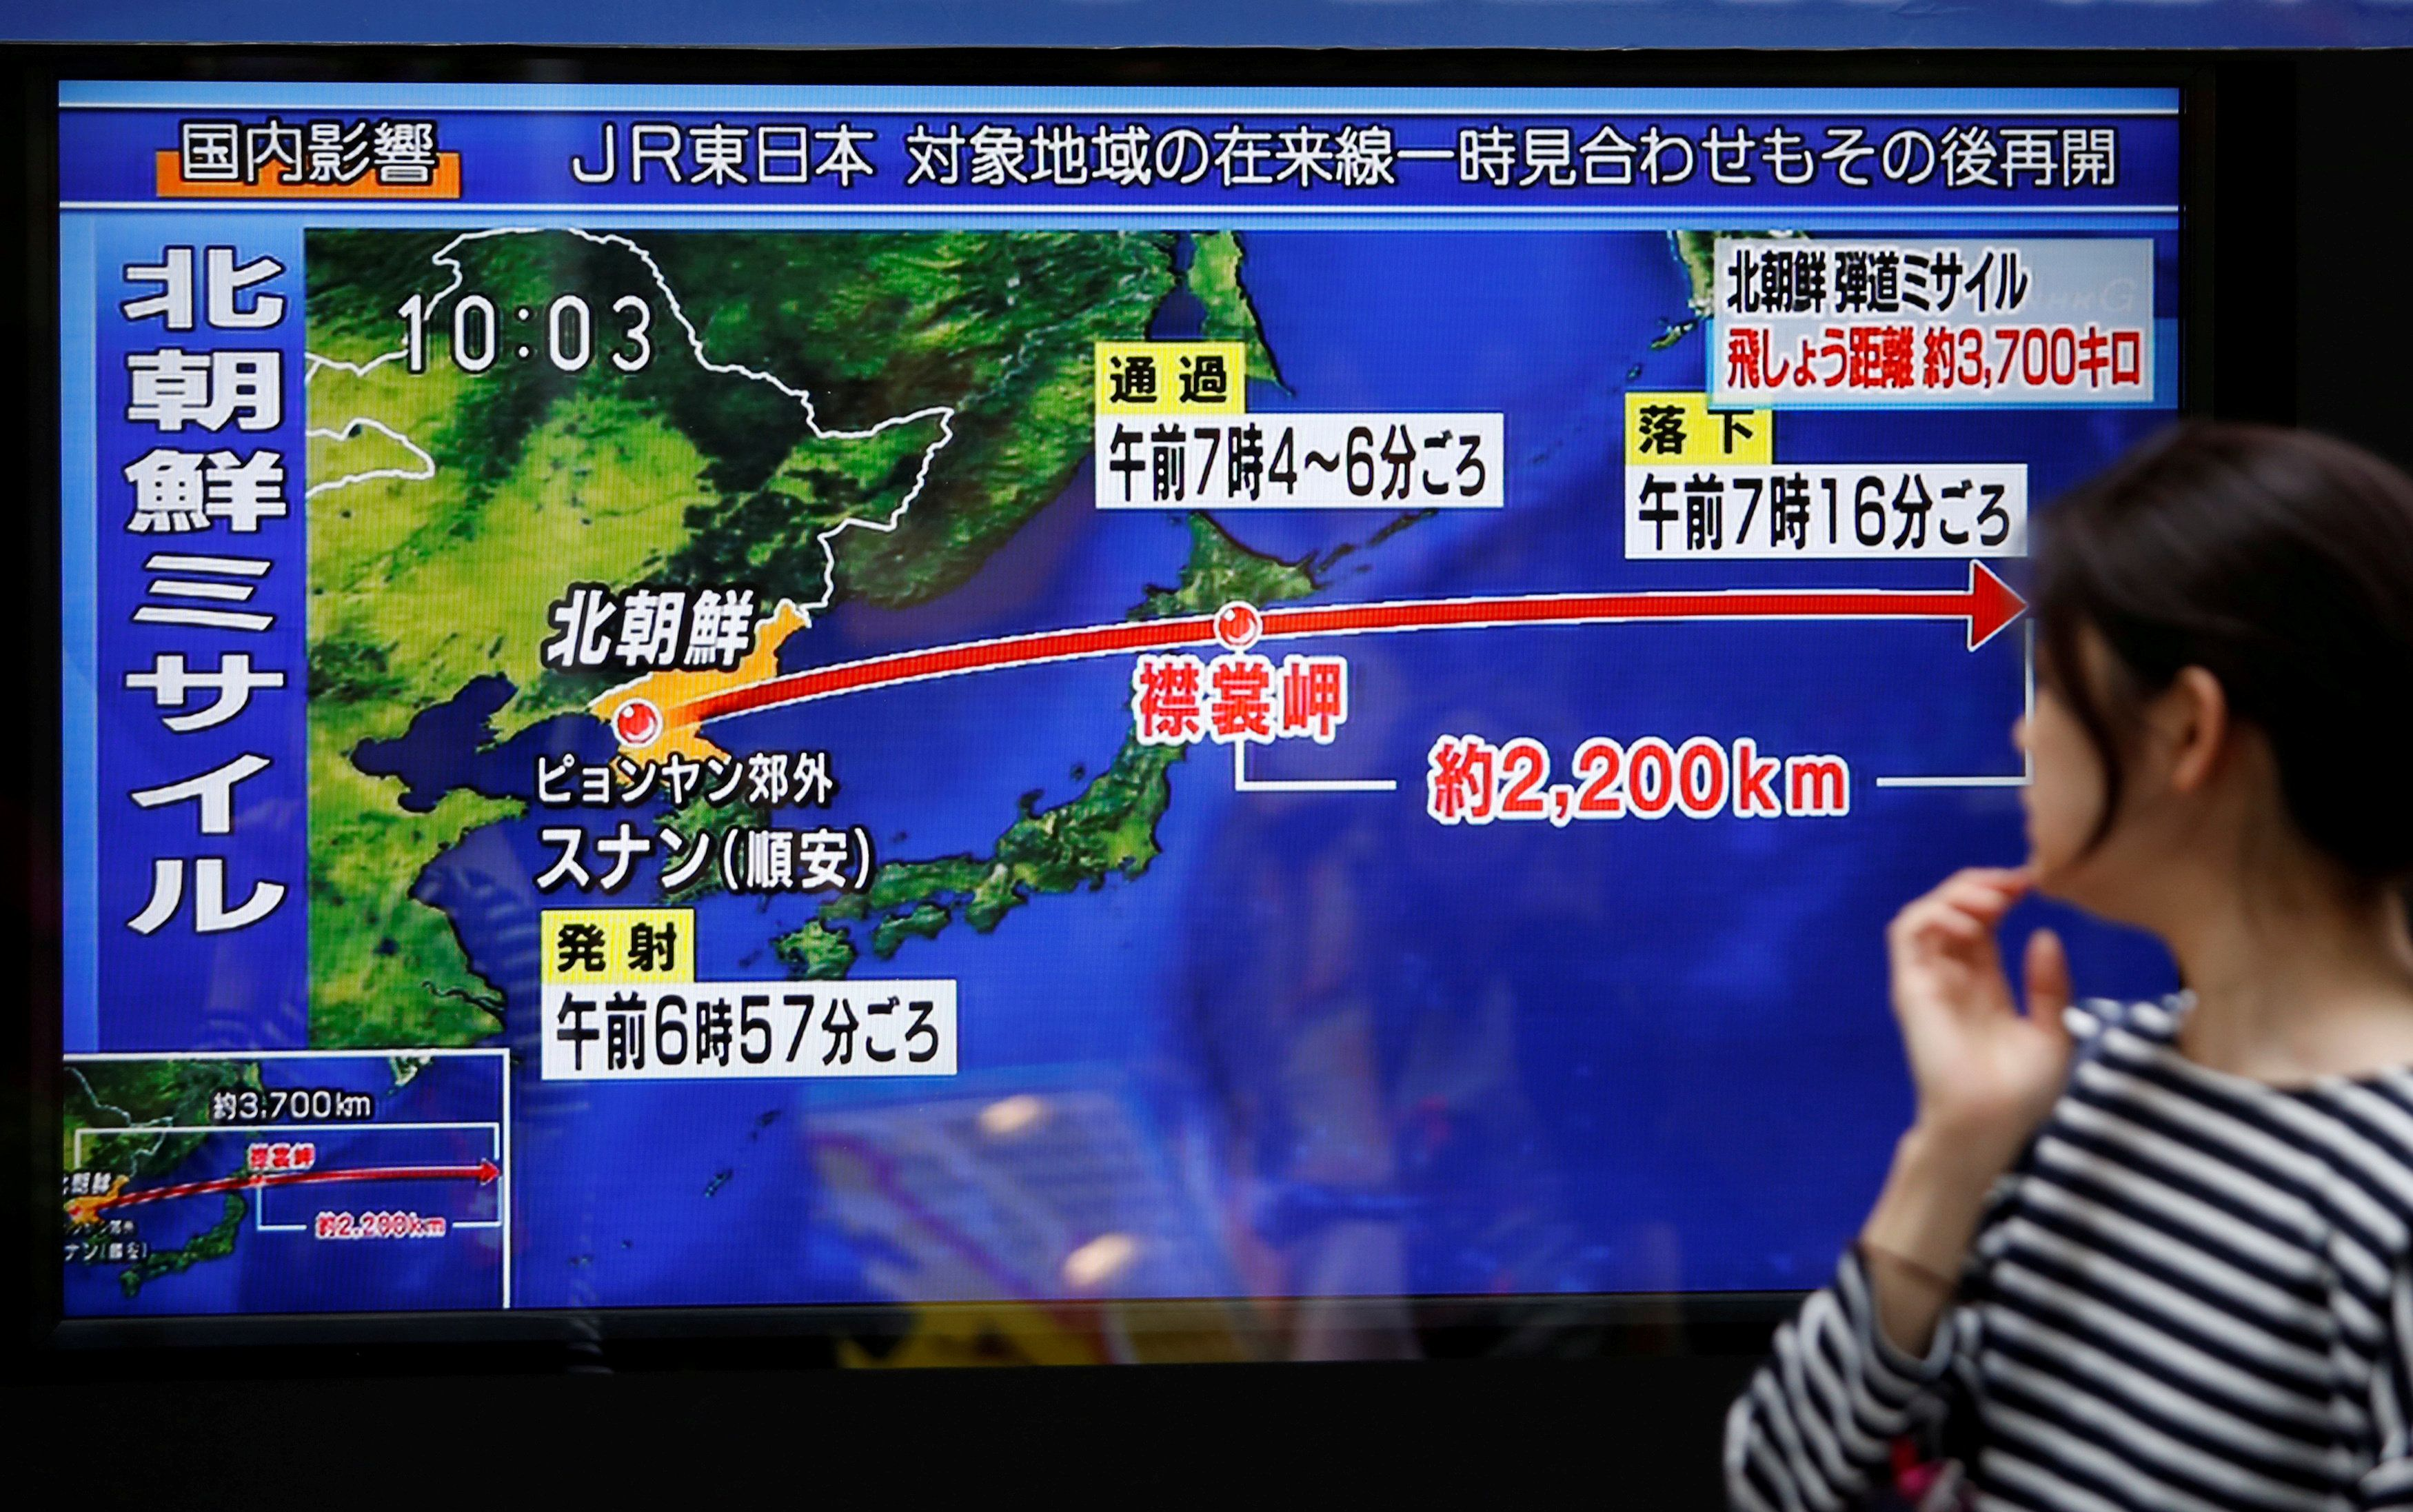 A TV screen in Tokyo shows news about North Korea's missile launchover Japan on Sept. 15, 2017.